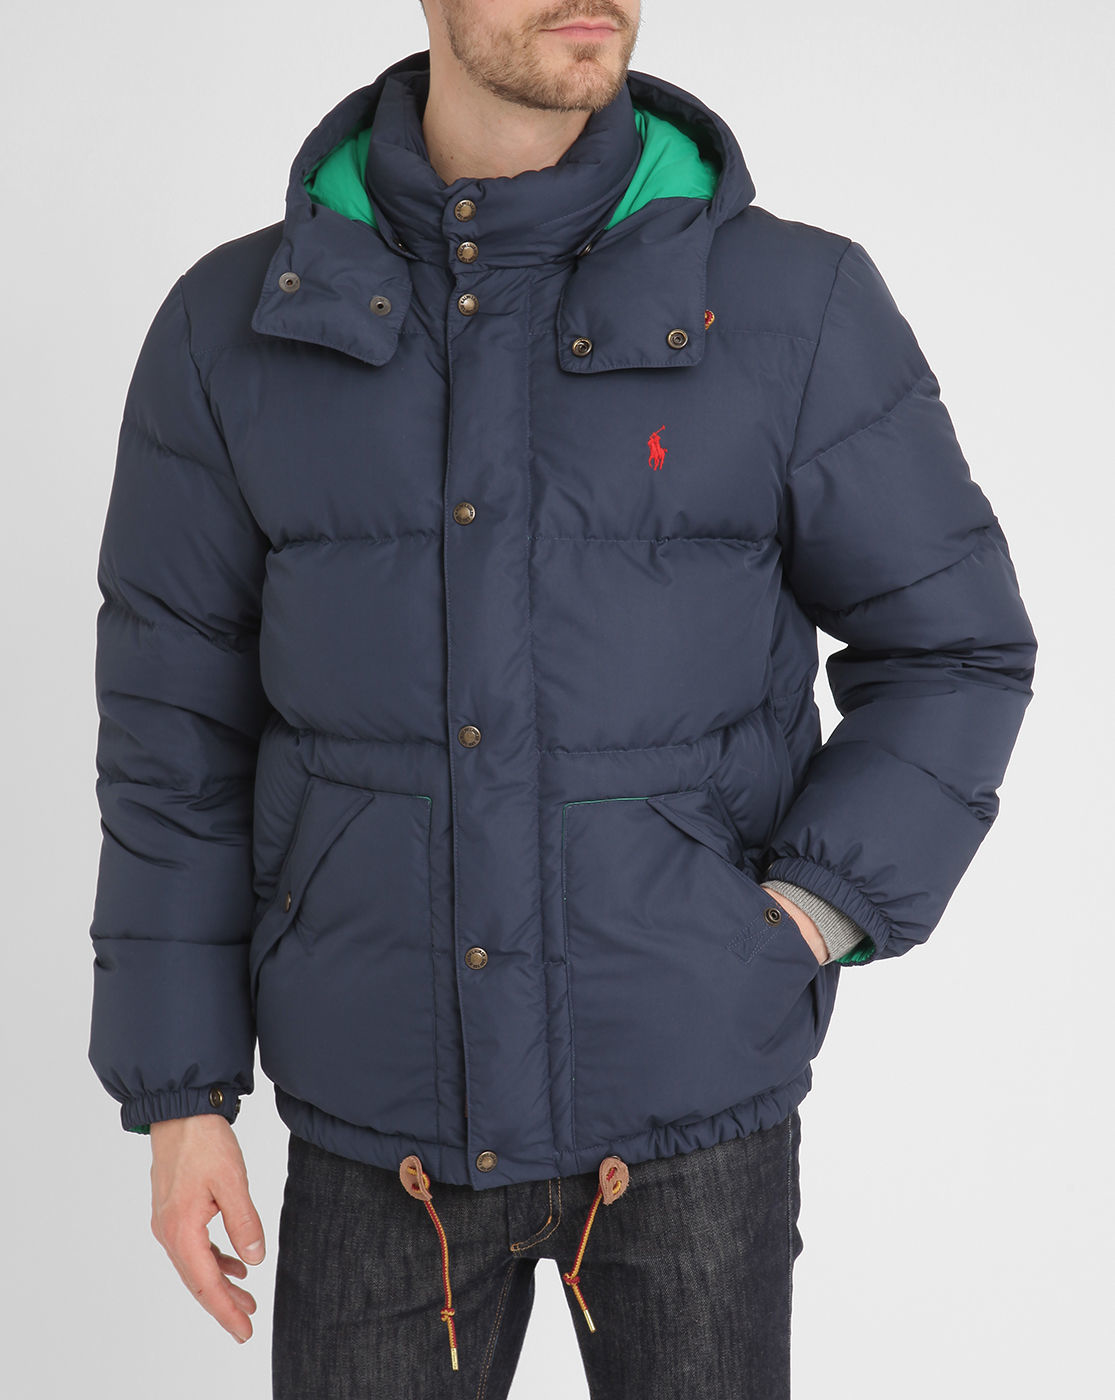 polo ralph lauren navy retro down jacket in blue for men lyst. Black Bedroom Furniture Sets. Home Design Ideas